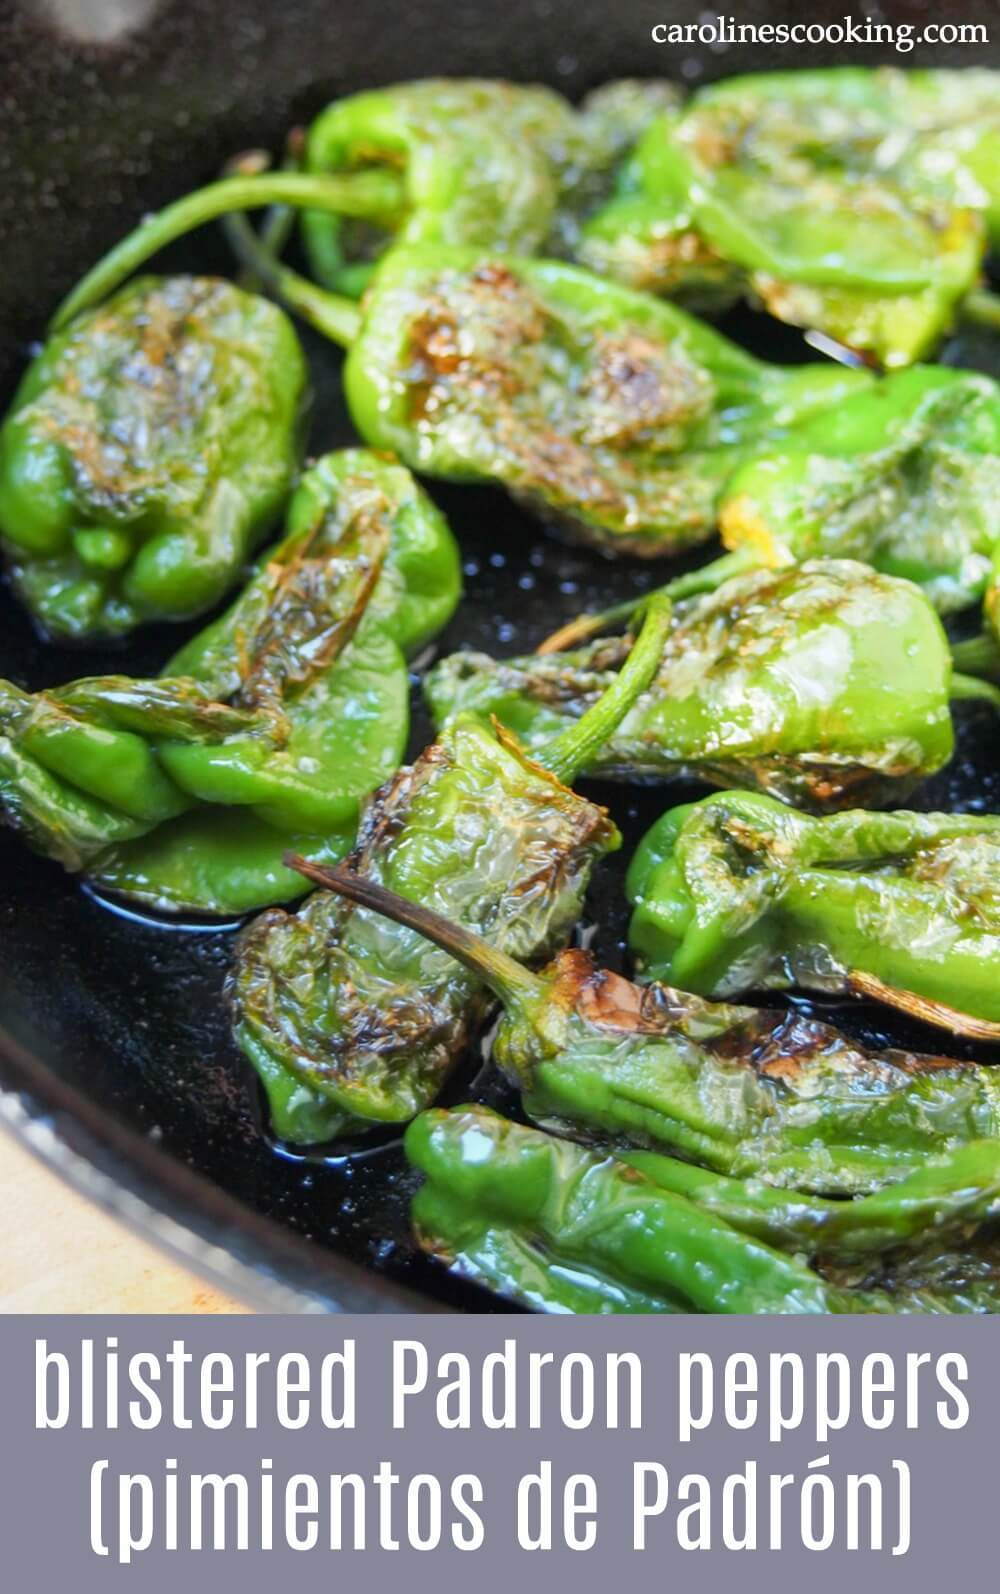 Blistered Padron peppers (pimientos de Padrón) - Blistered Padron peppers are a classic Spanish tapas that were always high up my list to order in Spain. But they're also incredibly easy to make at home, taking just a couple minutes! #padronpeppers #spanishtapas #tapas